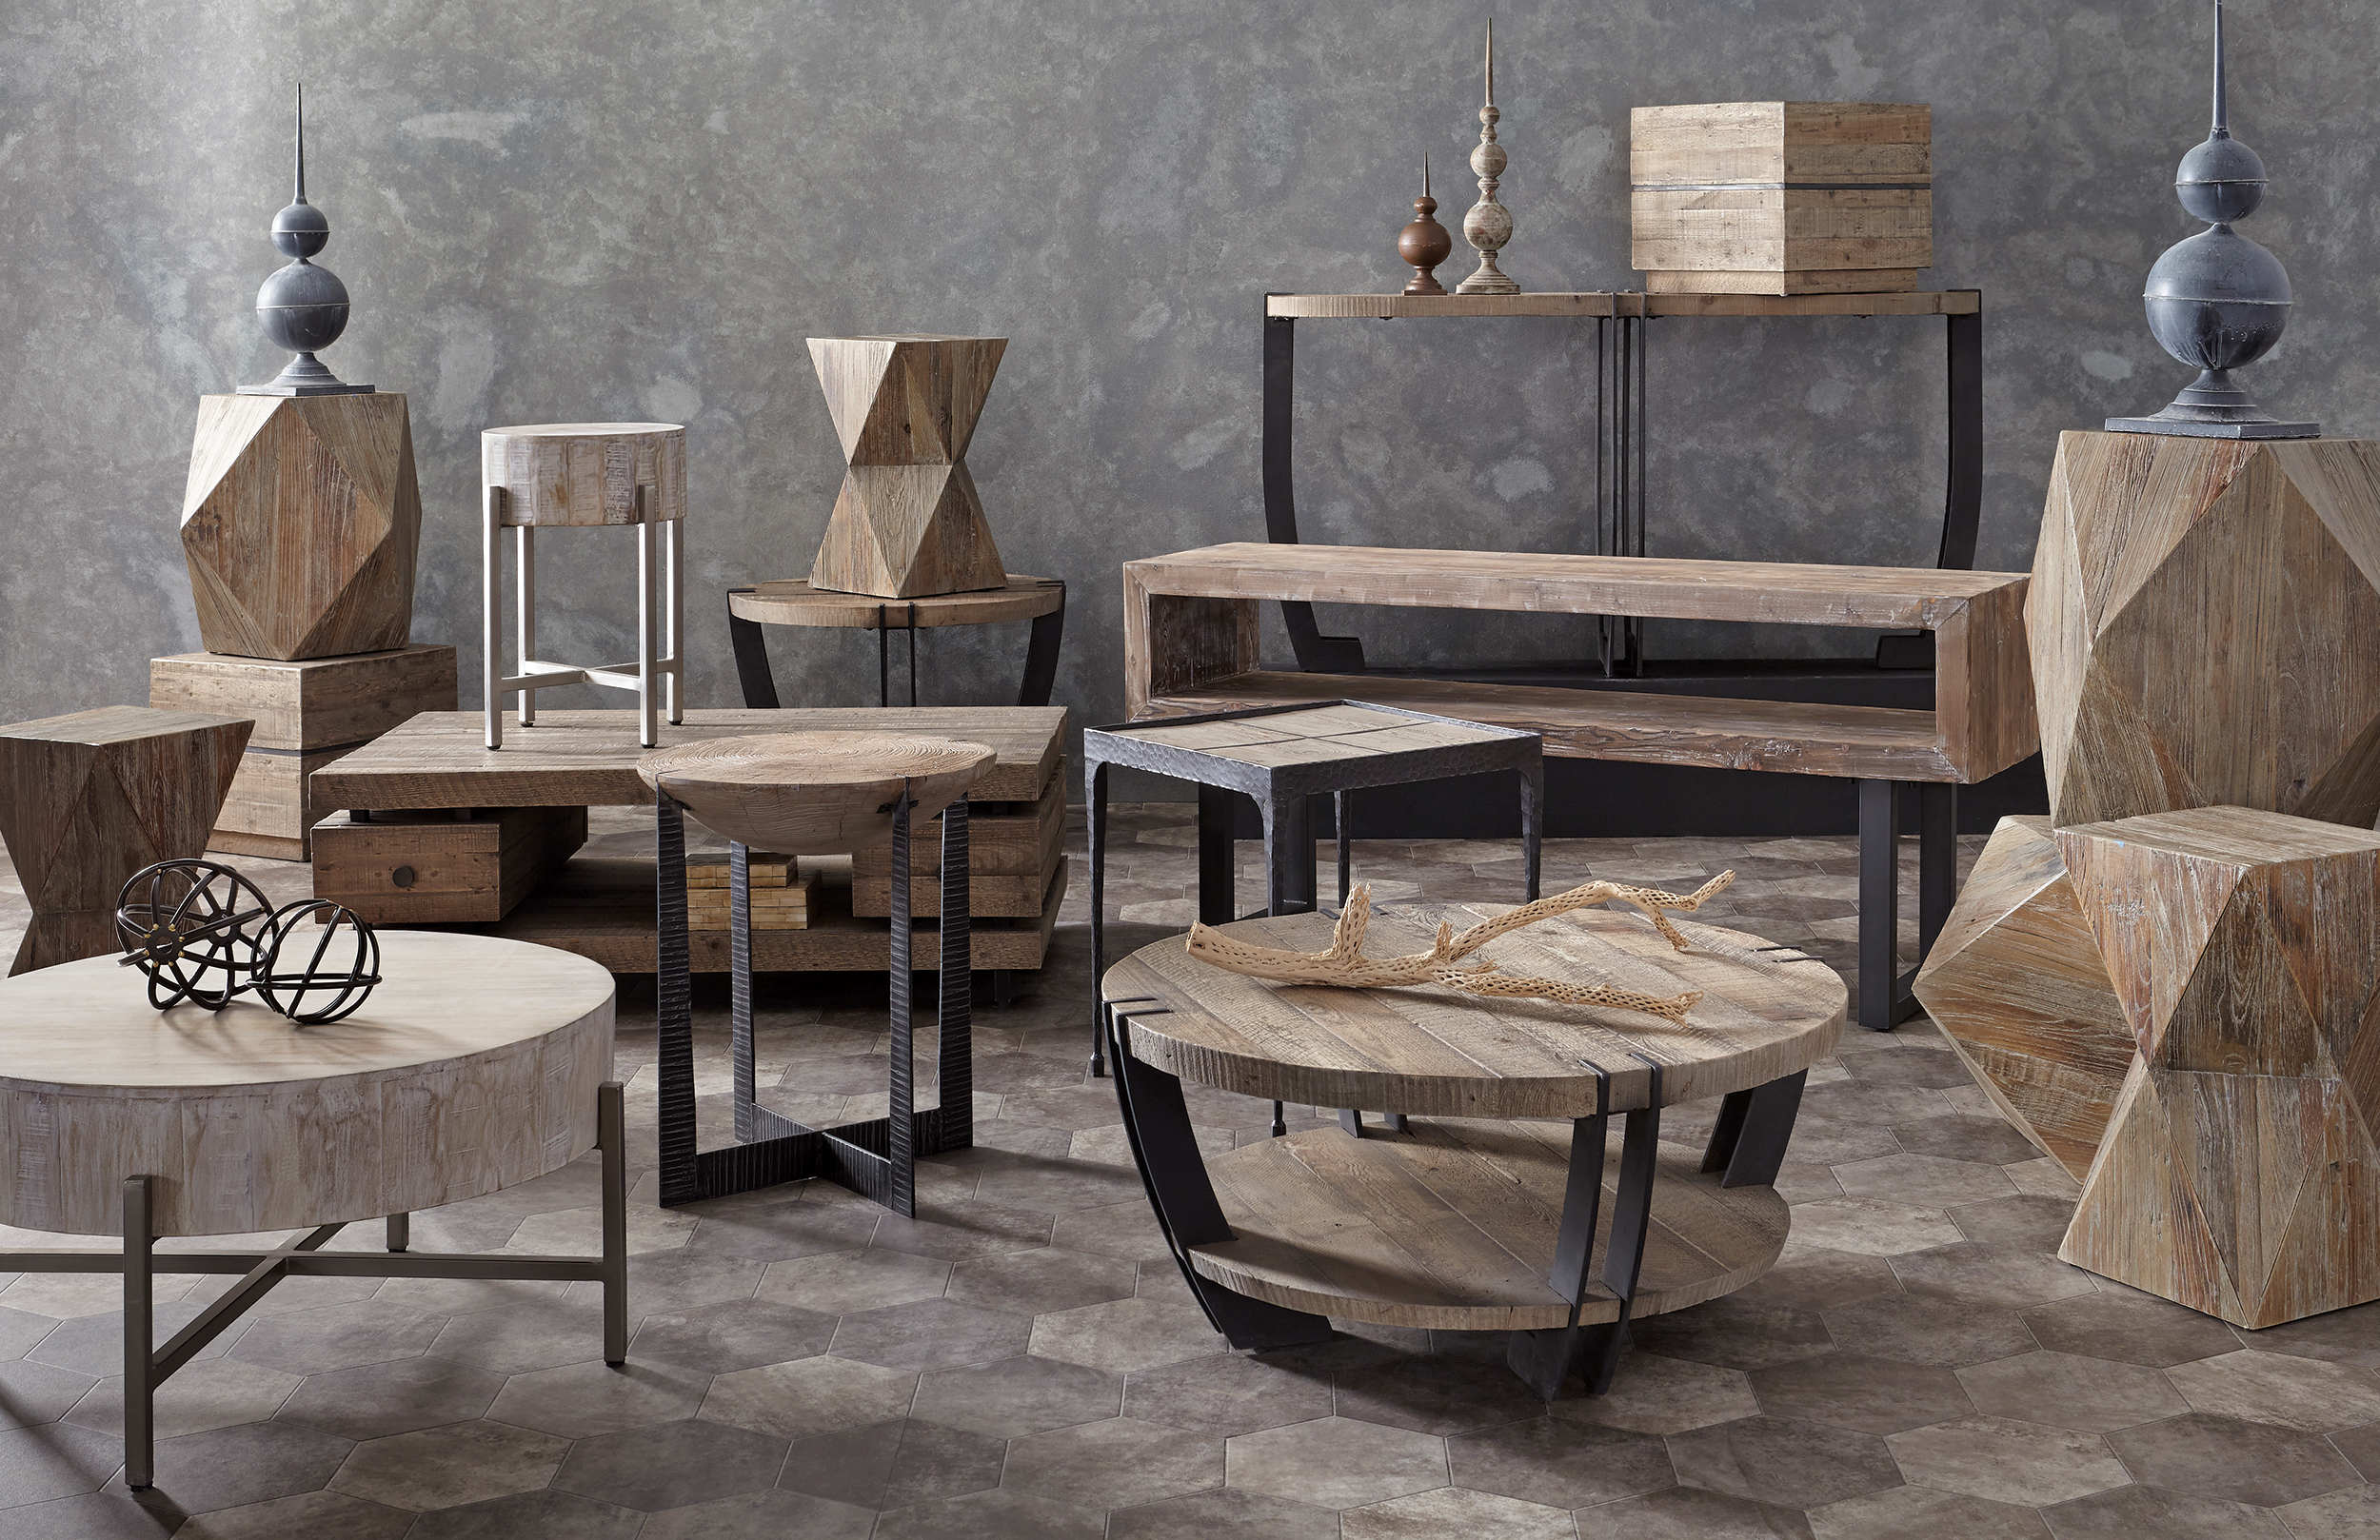 SQ 16-009 - Occasional Tables.jpg